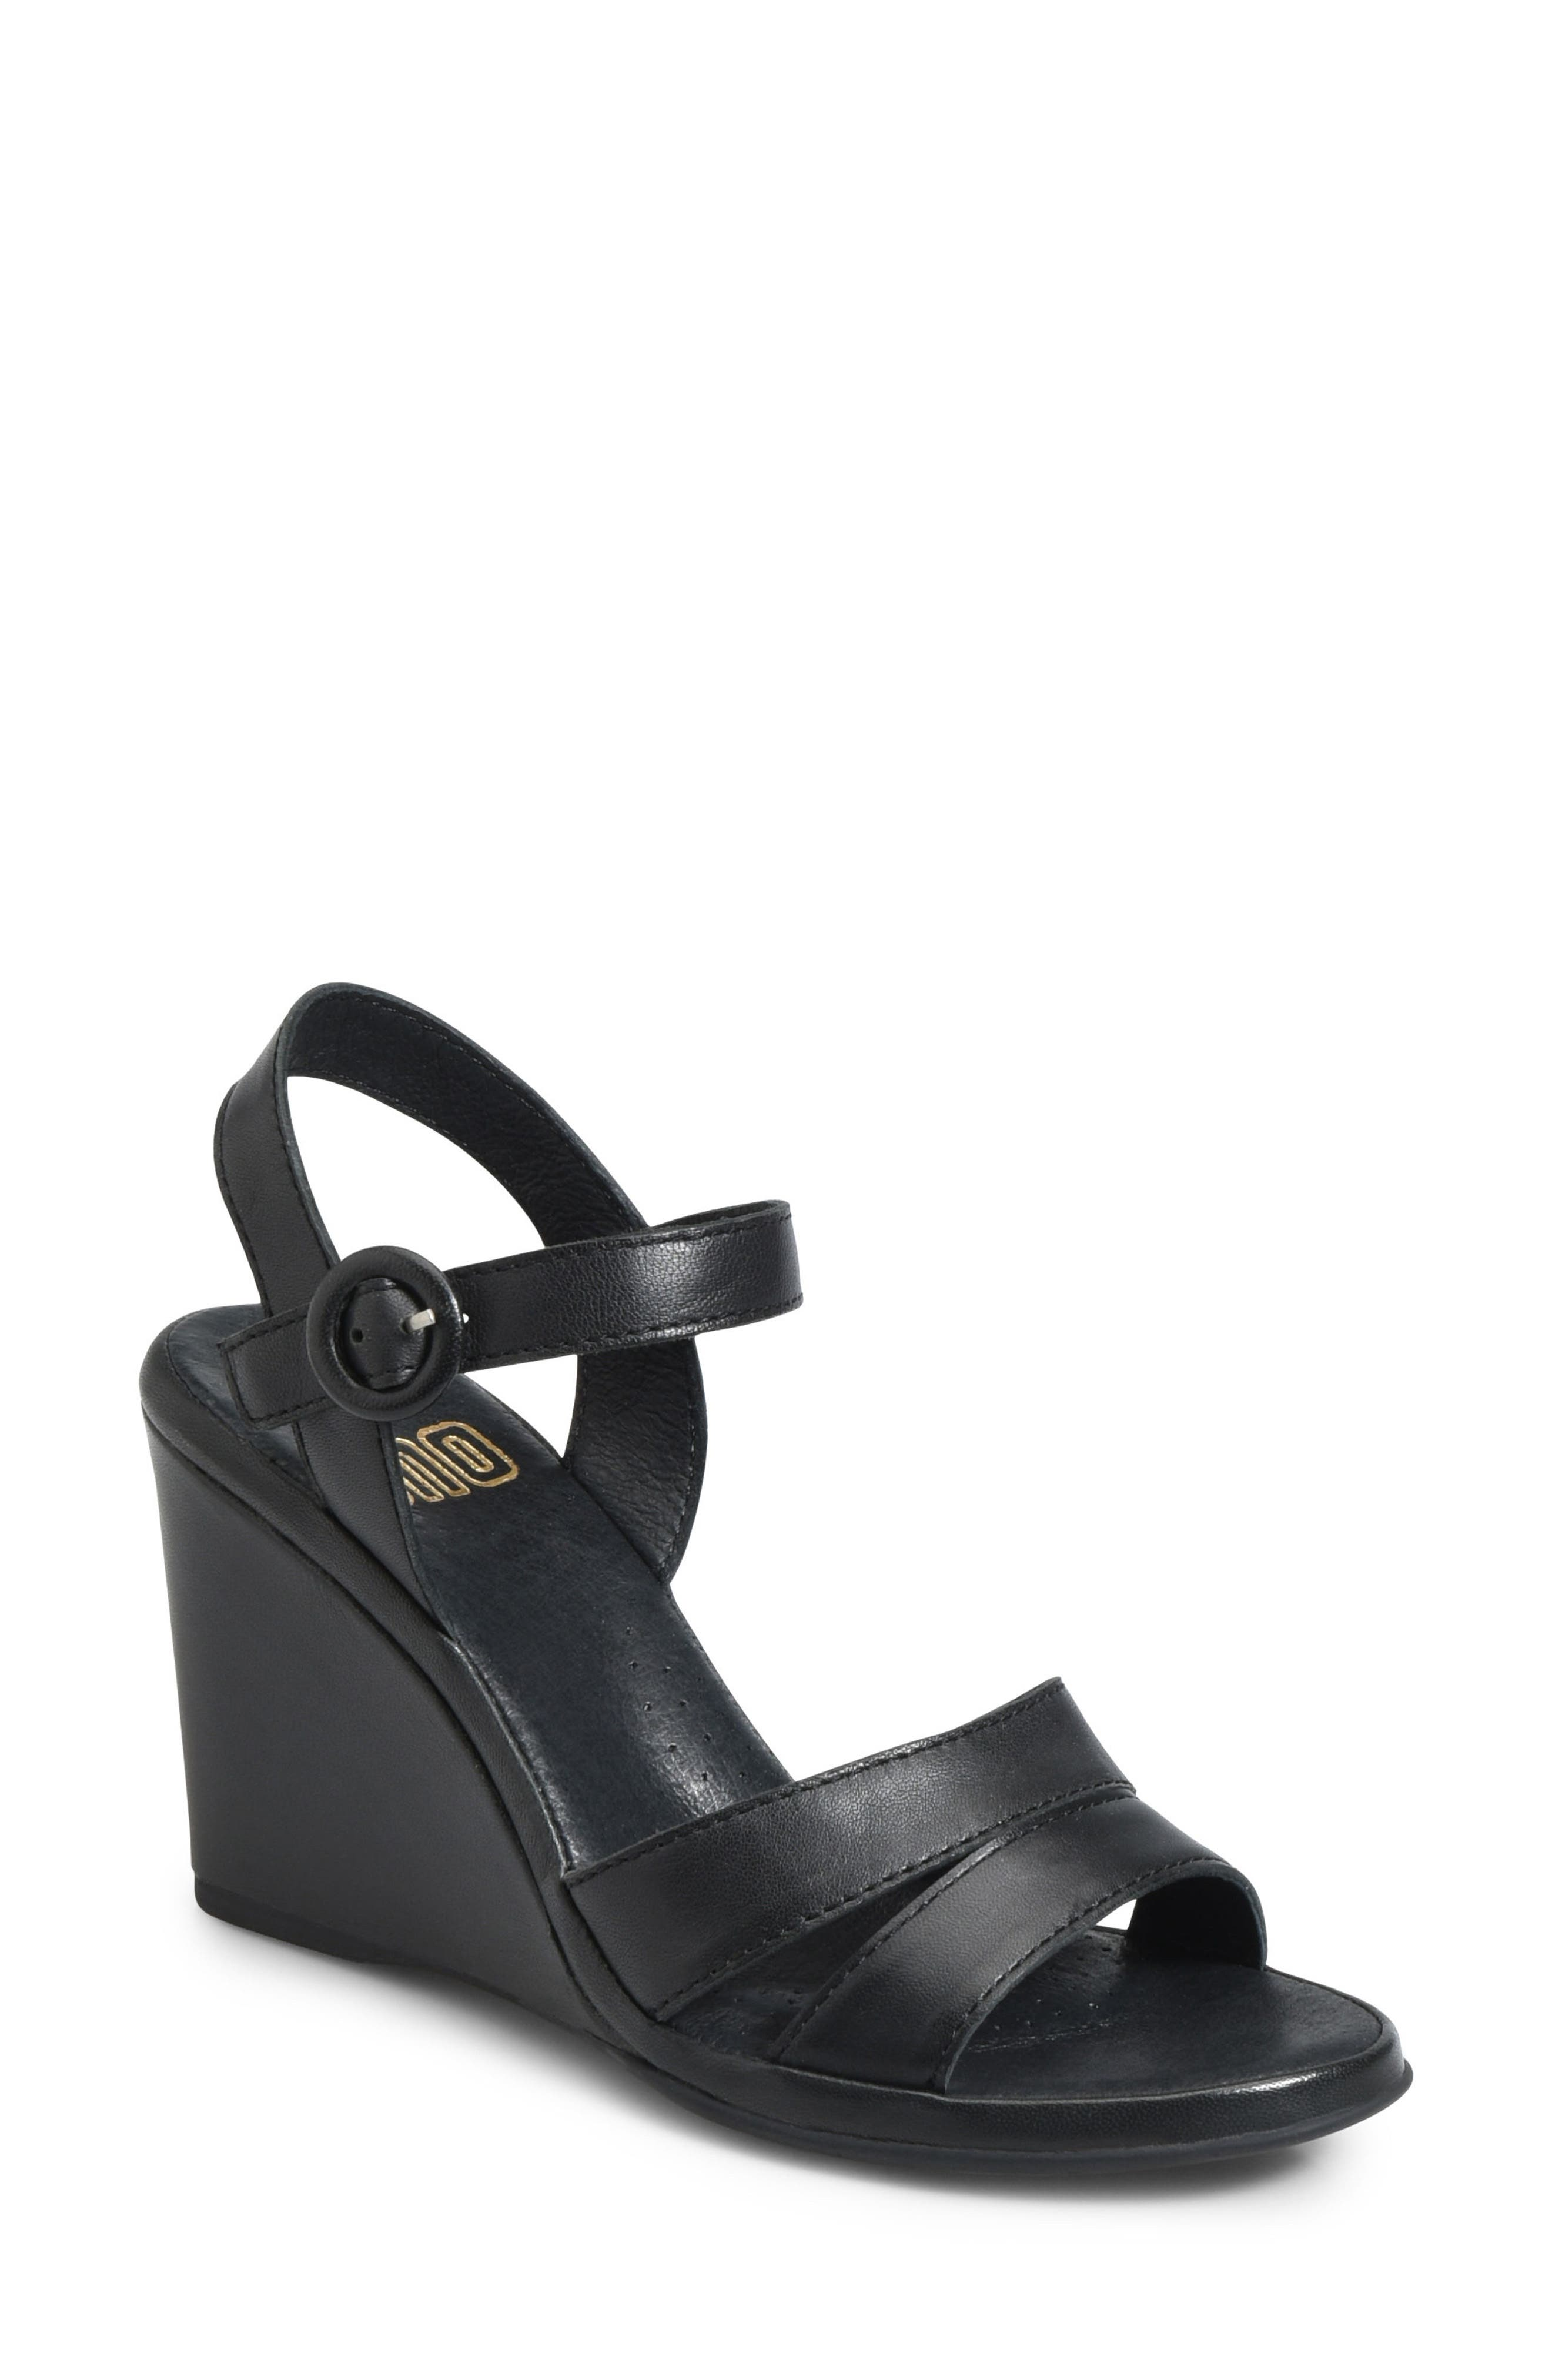 Hydro Wedge Sandal,                         Main,                         color, BLACK LEATHER